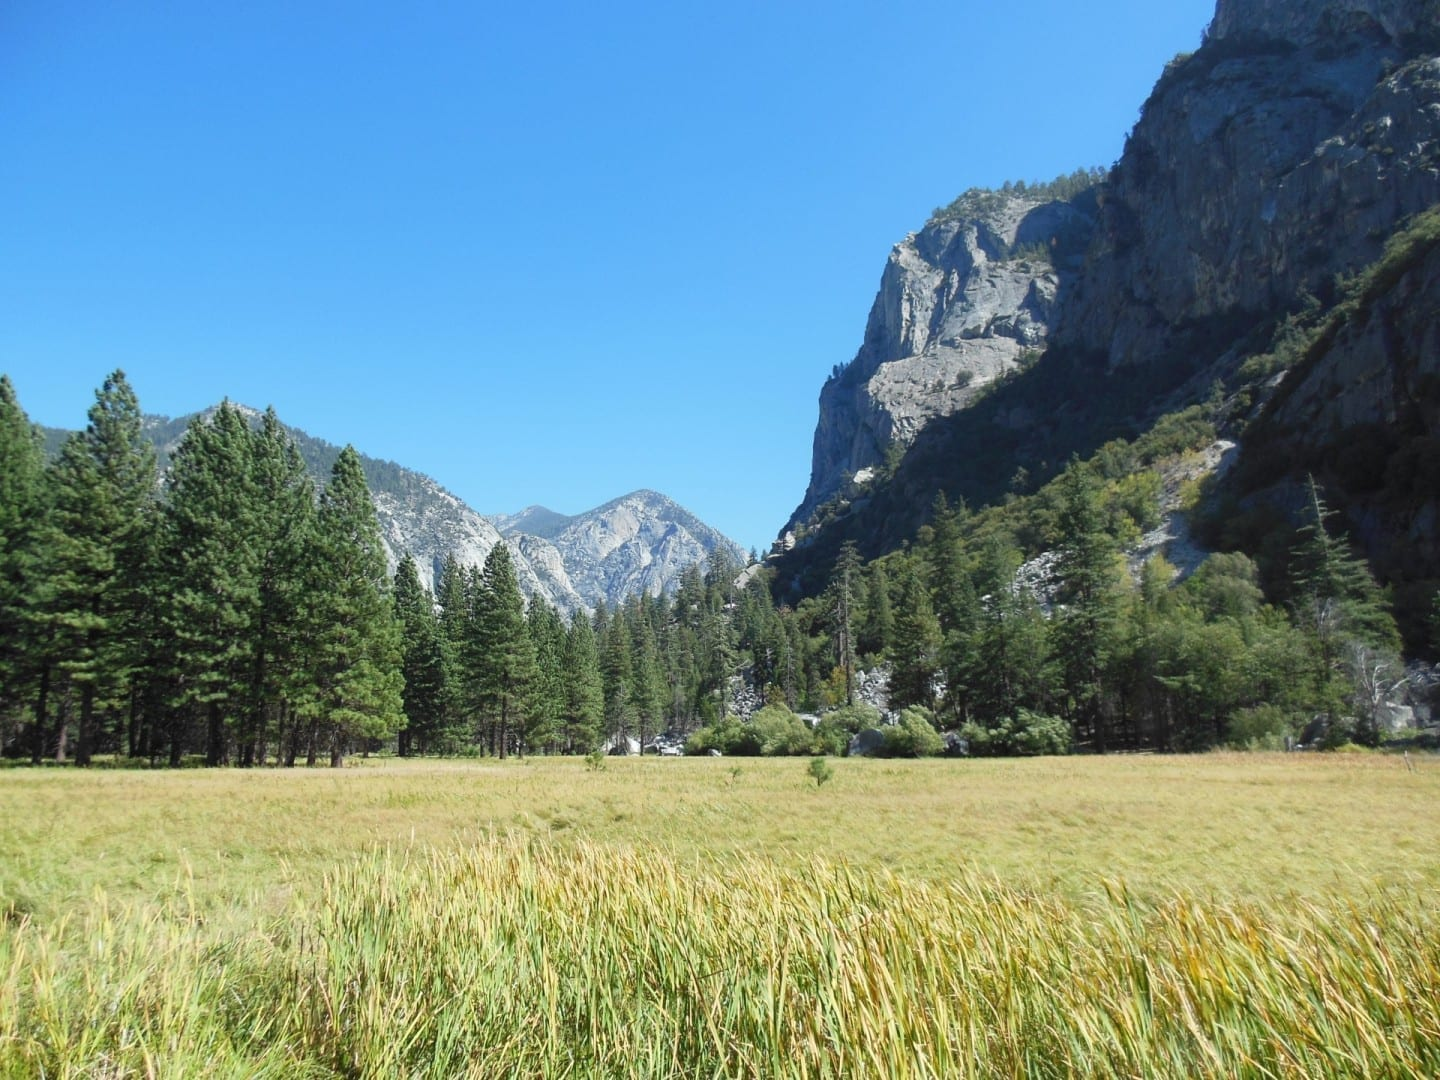 La pradera Zumwalt en el Parque Nacional de Kings Canyon Kings Canyon y Sequoia: Parques Nacionales Estados Unidos